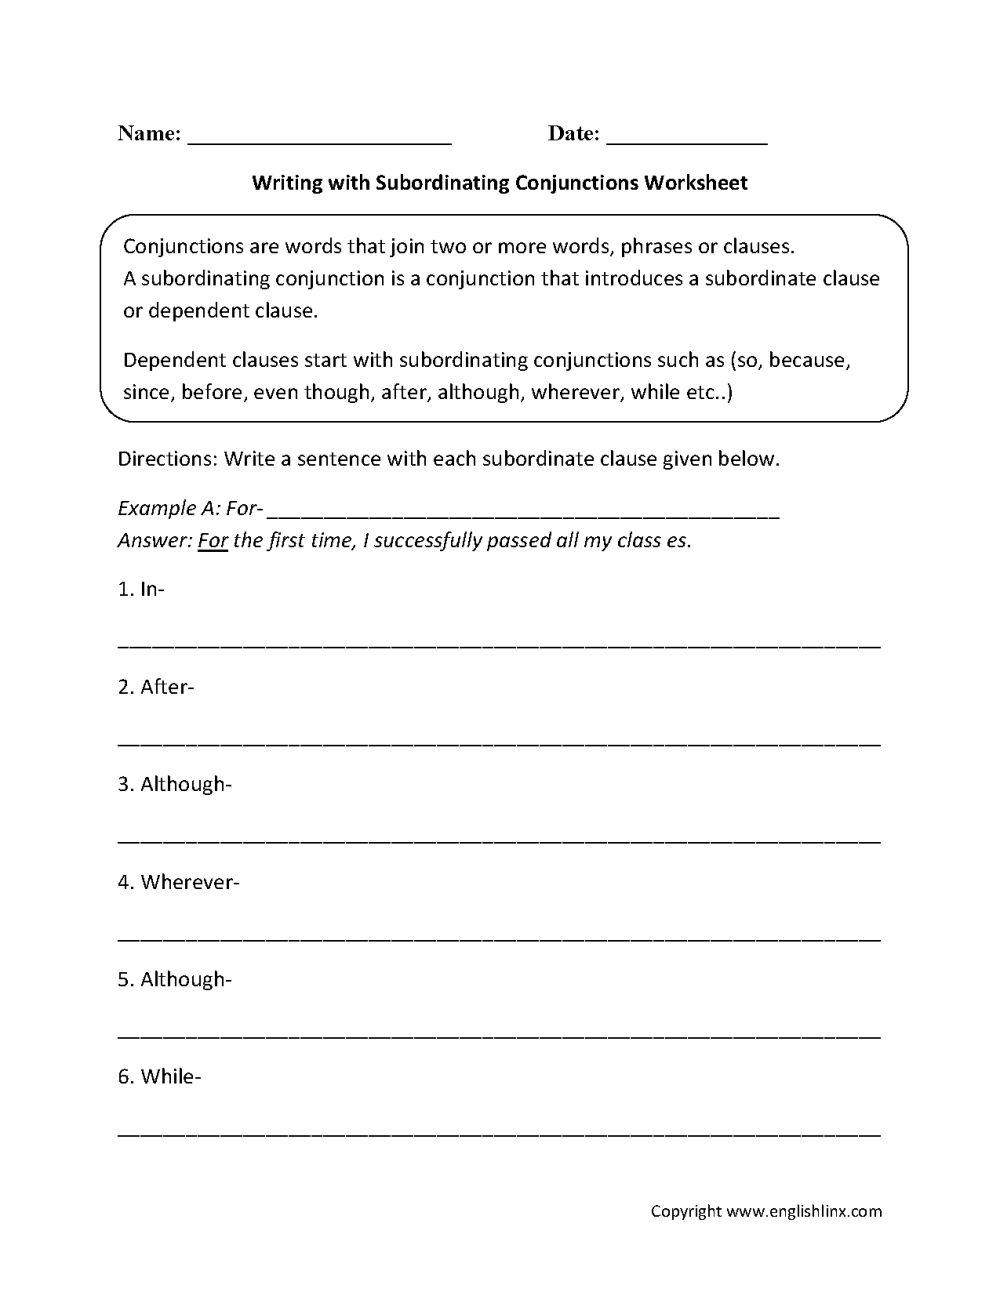 medium resolution of Conjunctions Worksheets   Writing with Subordinating Conjunctions Worksheets